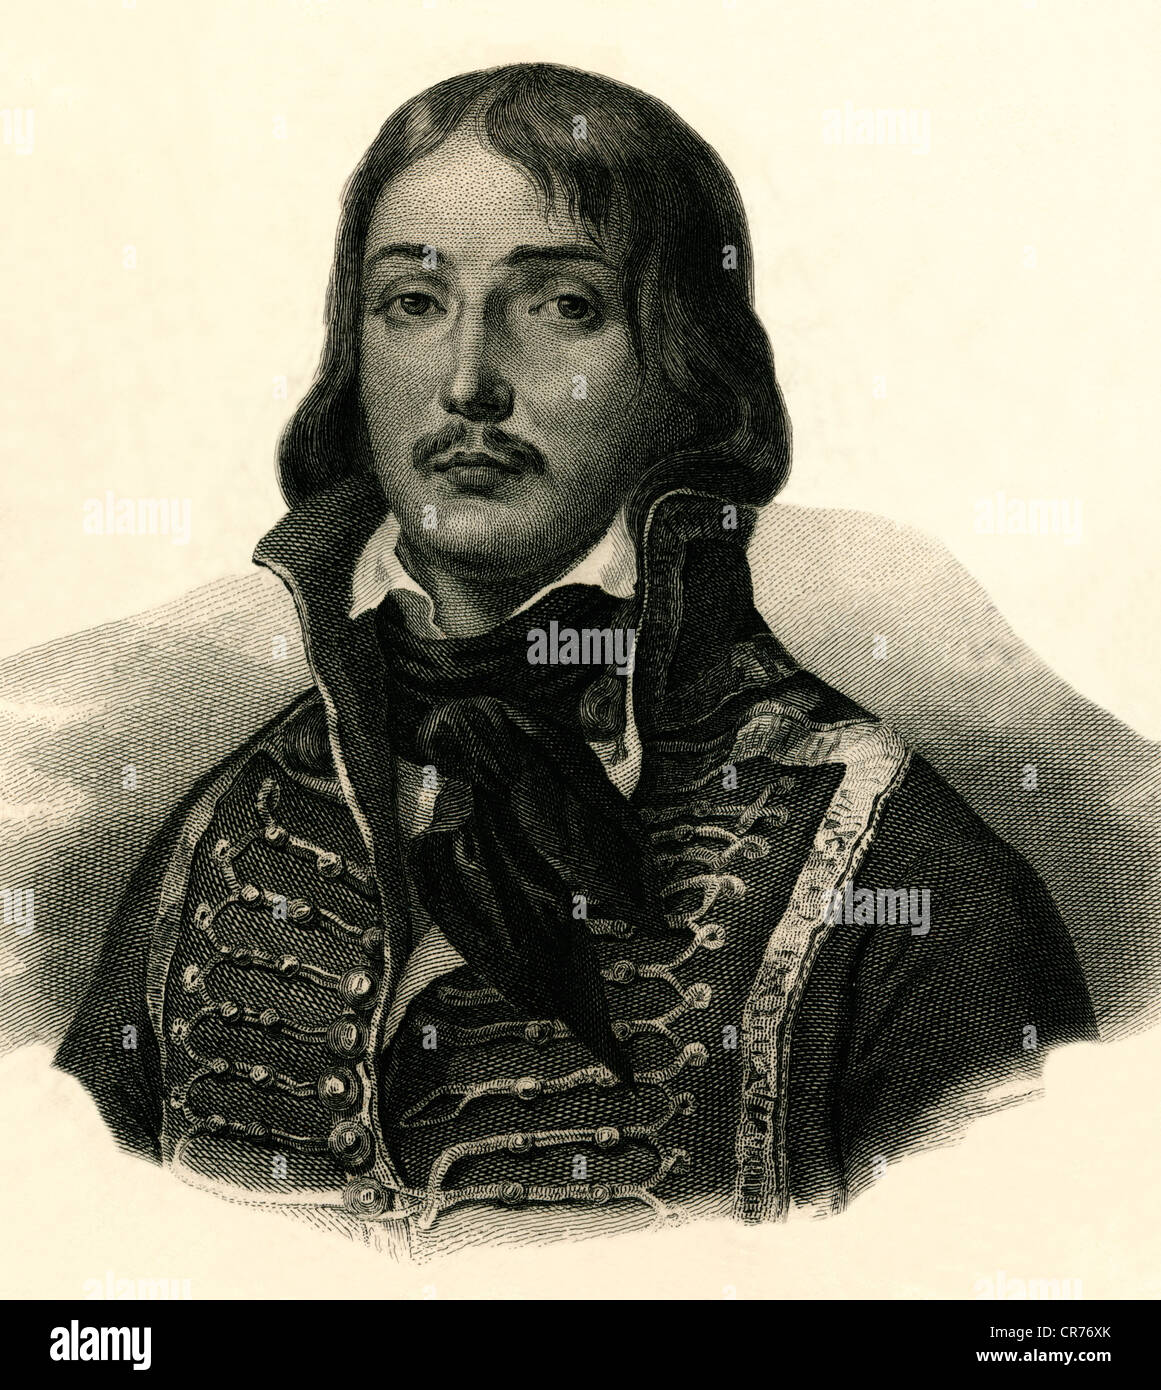 Marceau, Francois Severin, French general, 1.3.1769 - 21.9.1796, copperplate engraving, circa 1850, Artist's - Stock Image